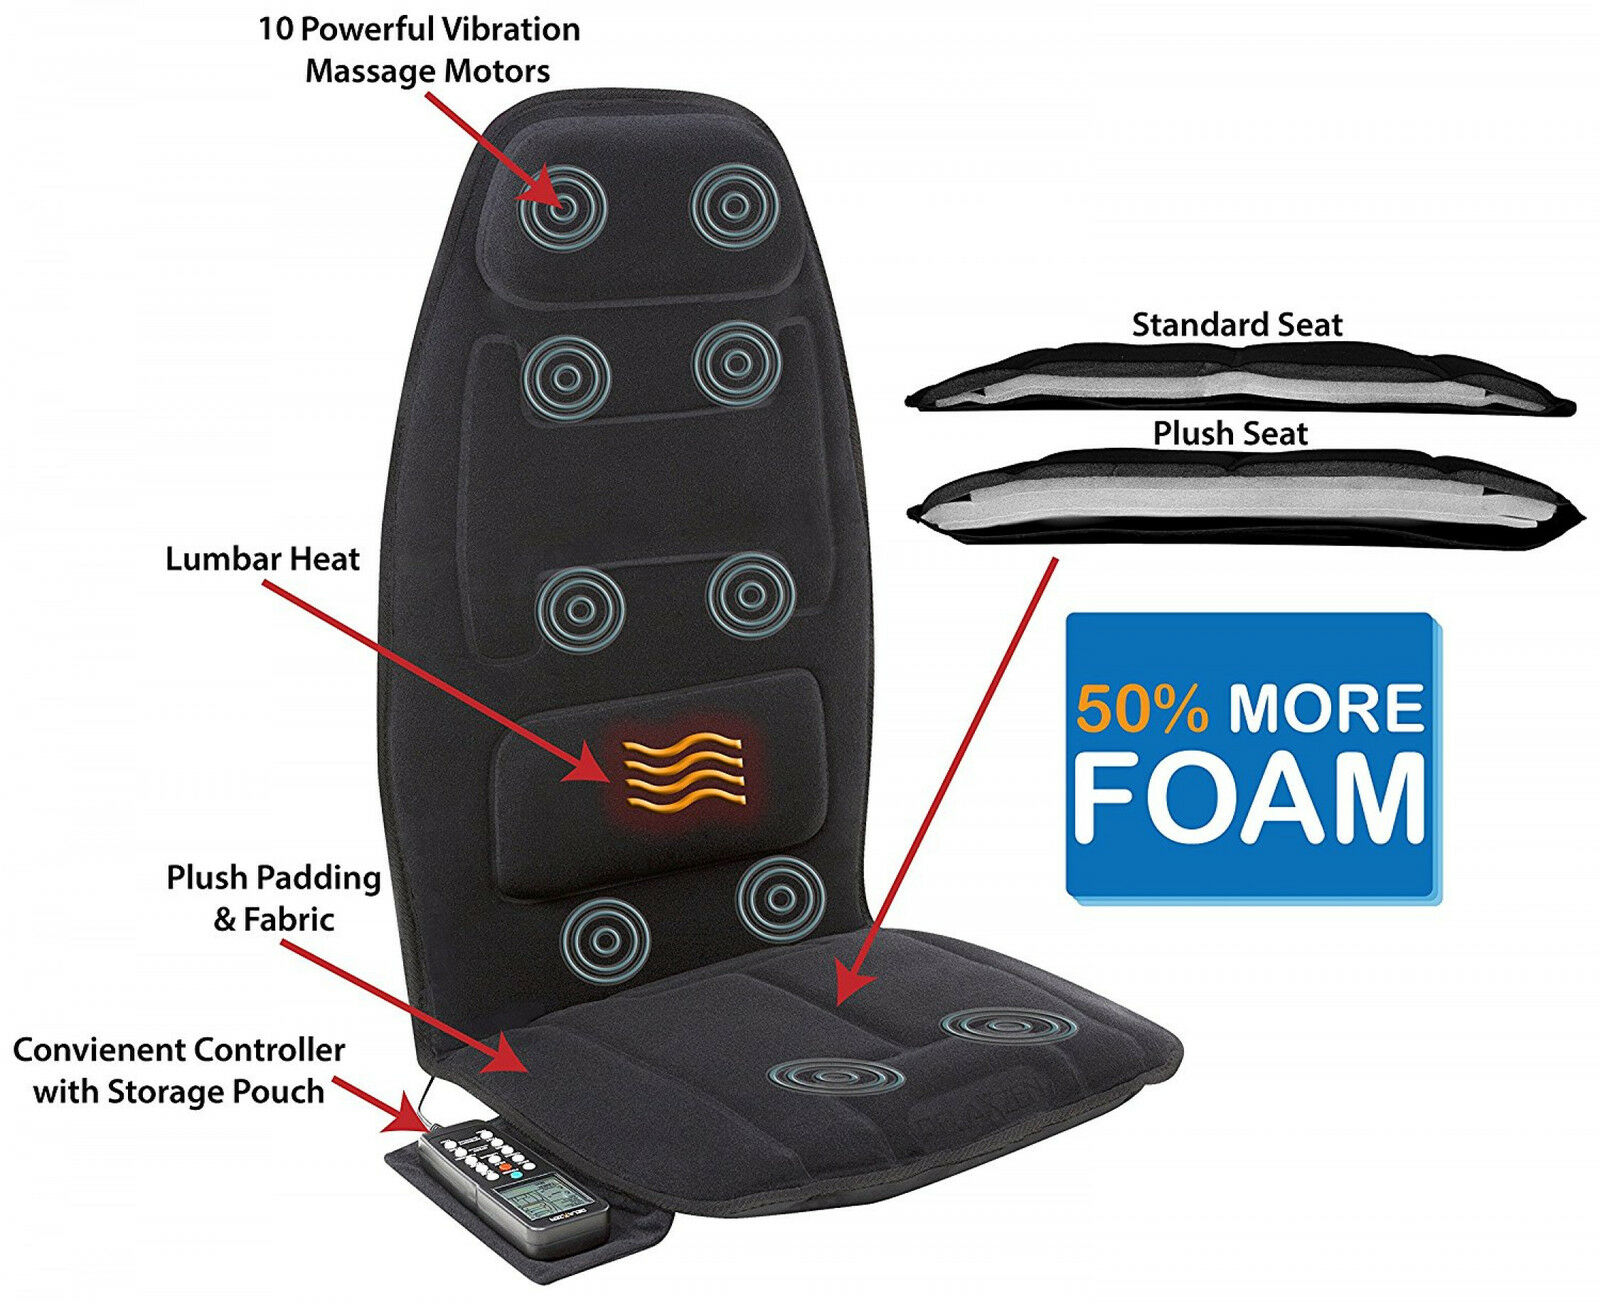 massage chair pad for car. picture 1 of 10 massage chair pad for car